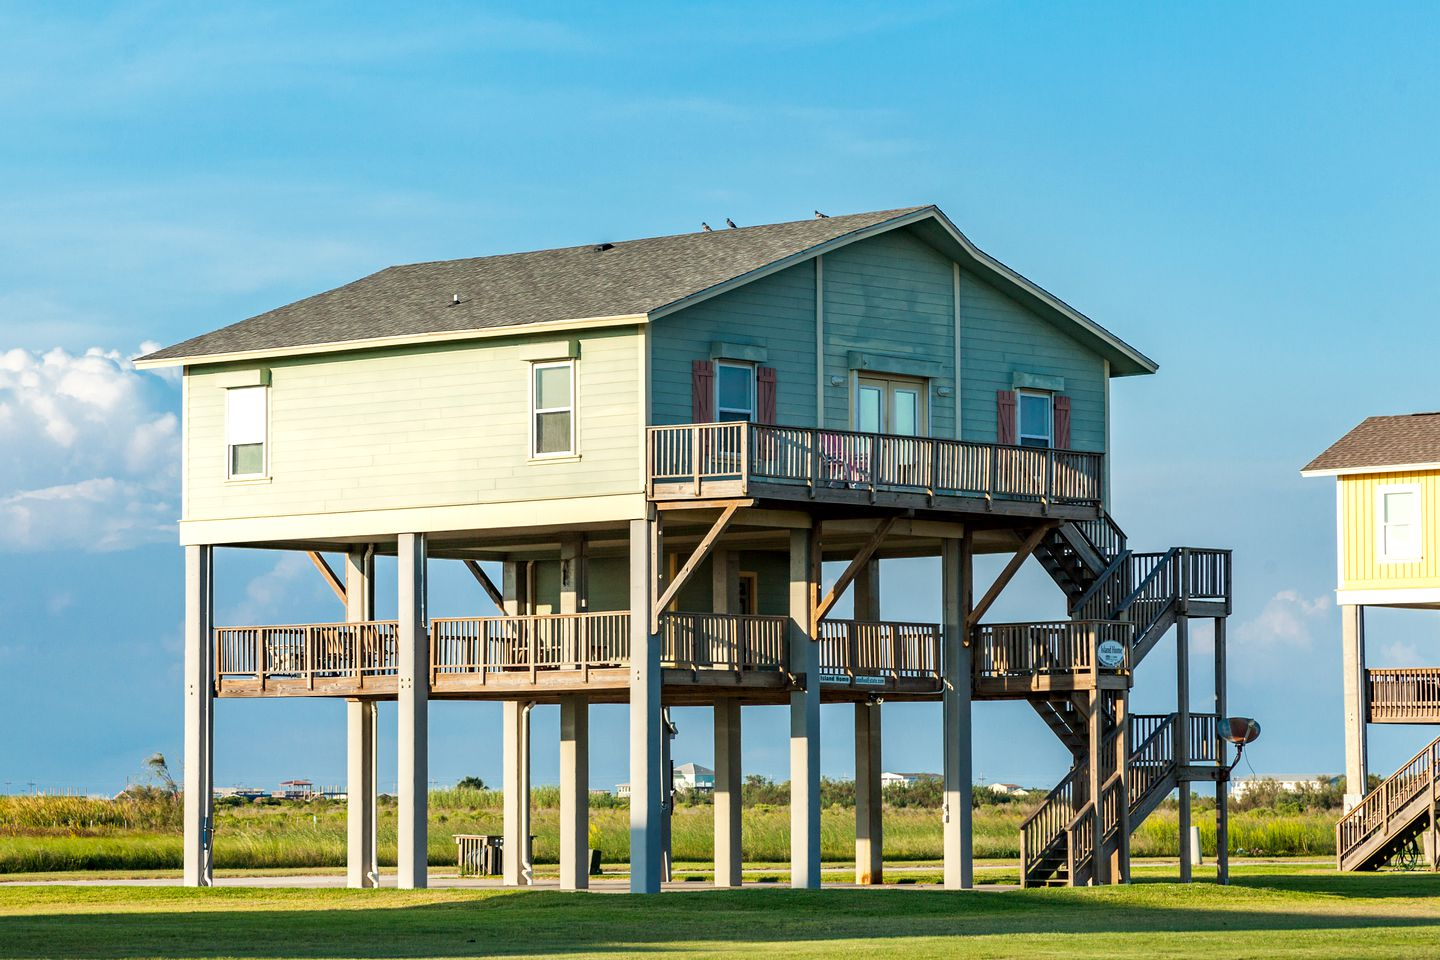 Beach Houses (Gilchrist, Texas, United States)